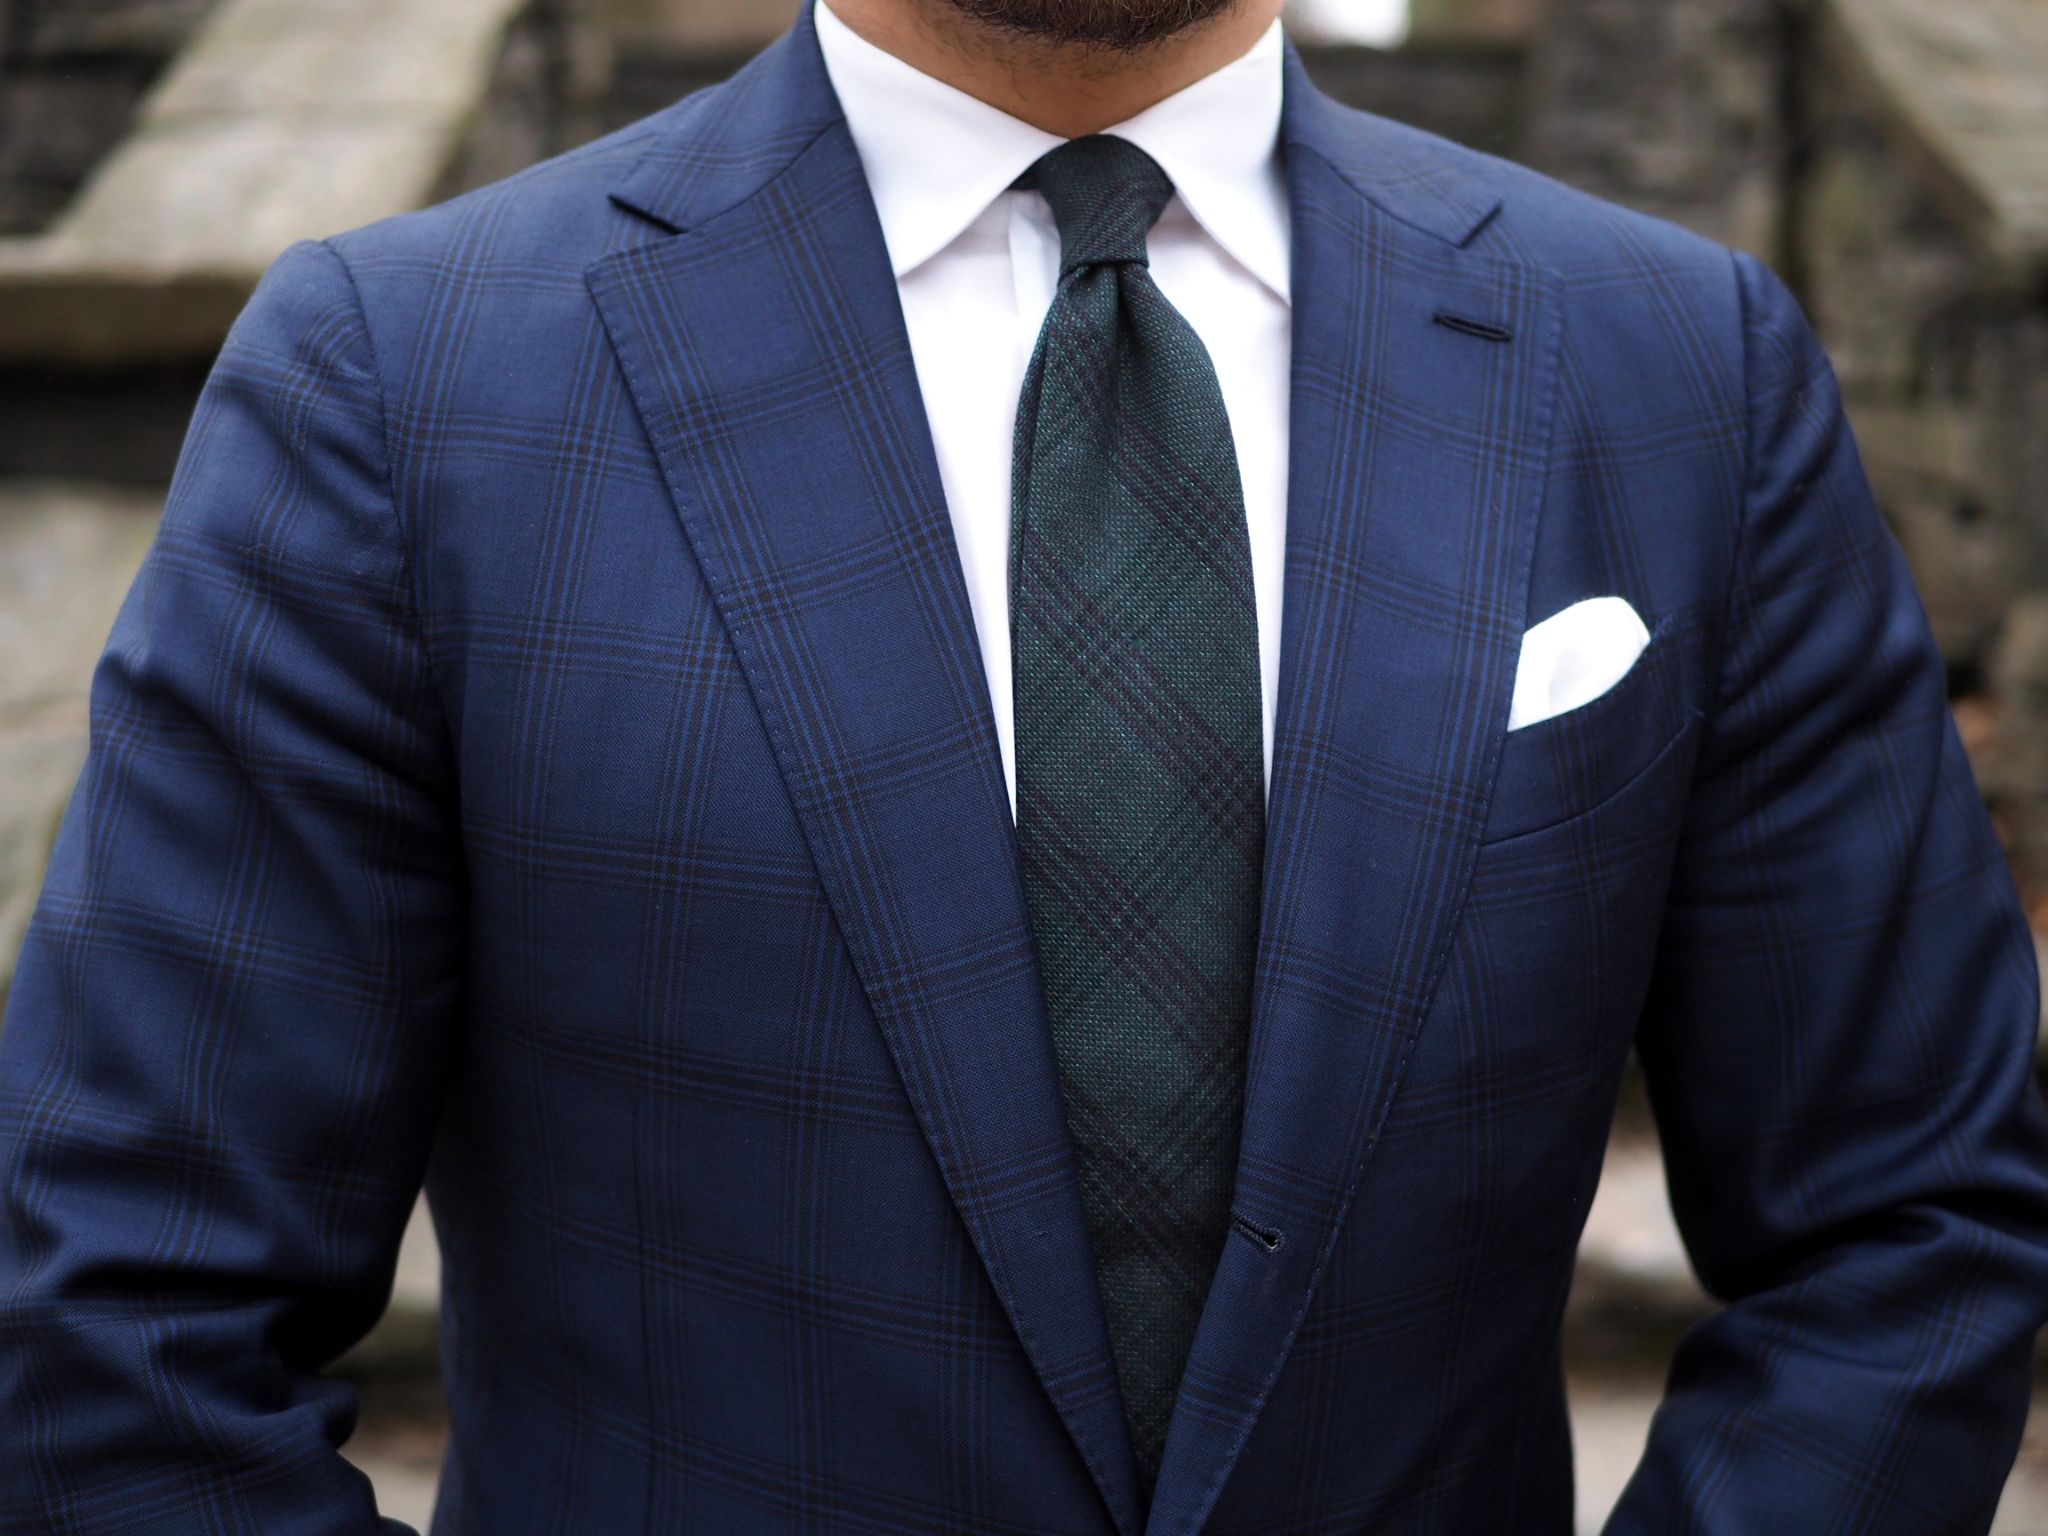 Bottle green tie for business wear - close-up with the suit and tie